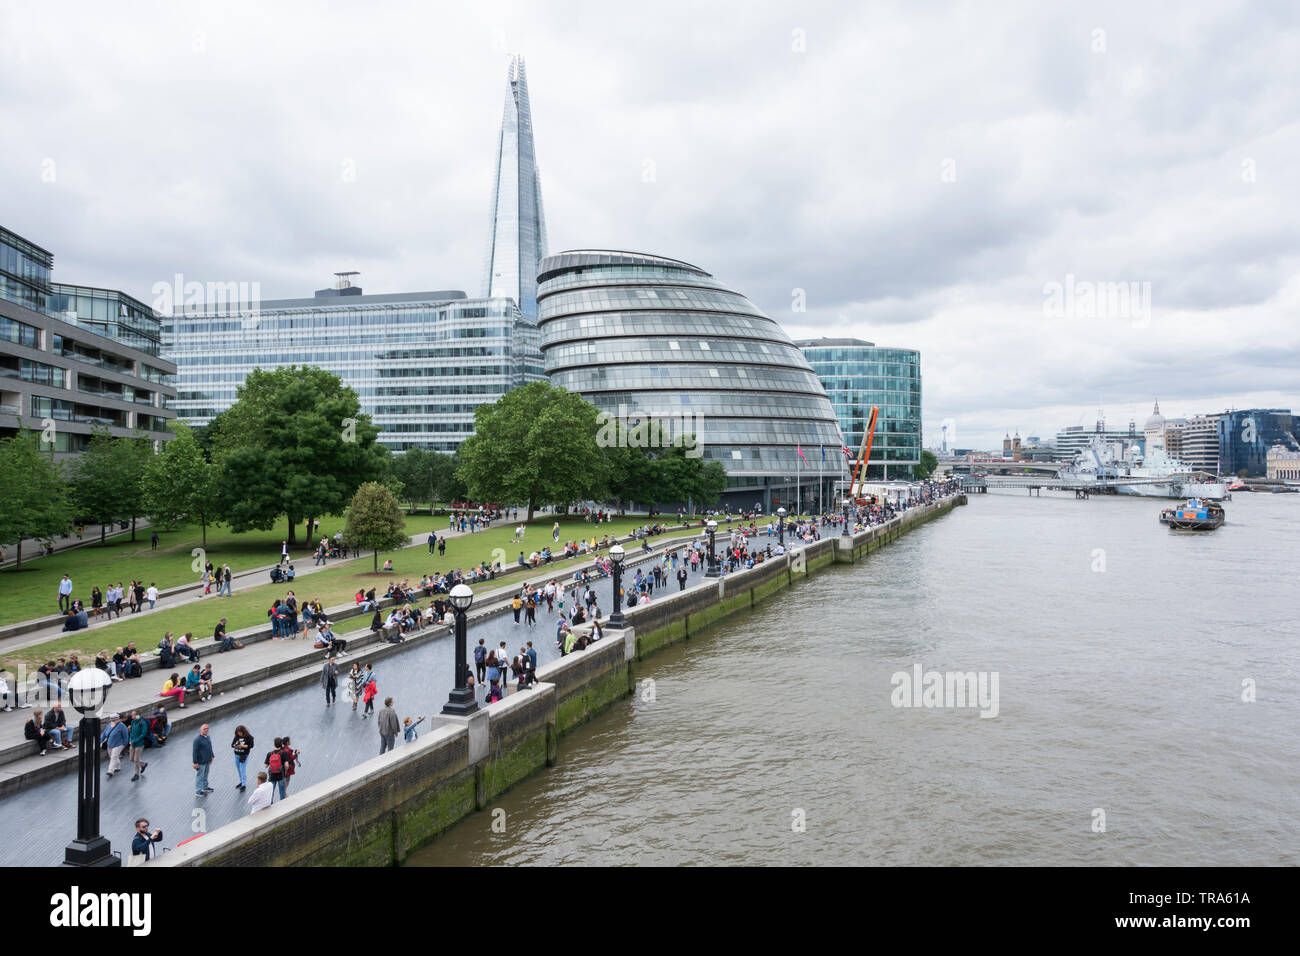 Tourists enjoying views of Norman Foster's London City Hall on the banks of the River Thames, London, UK - Stock Image